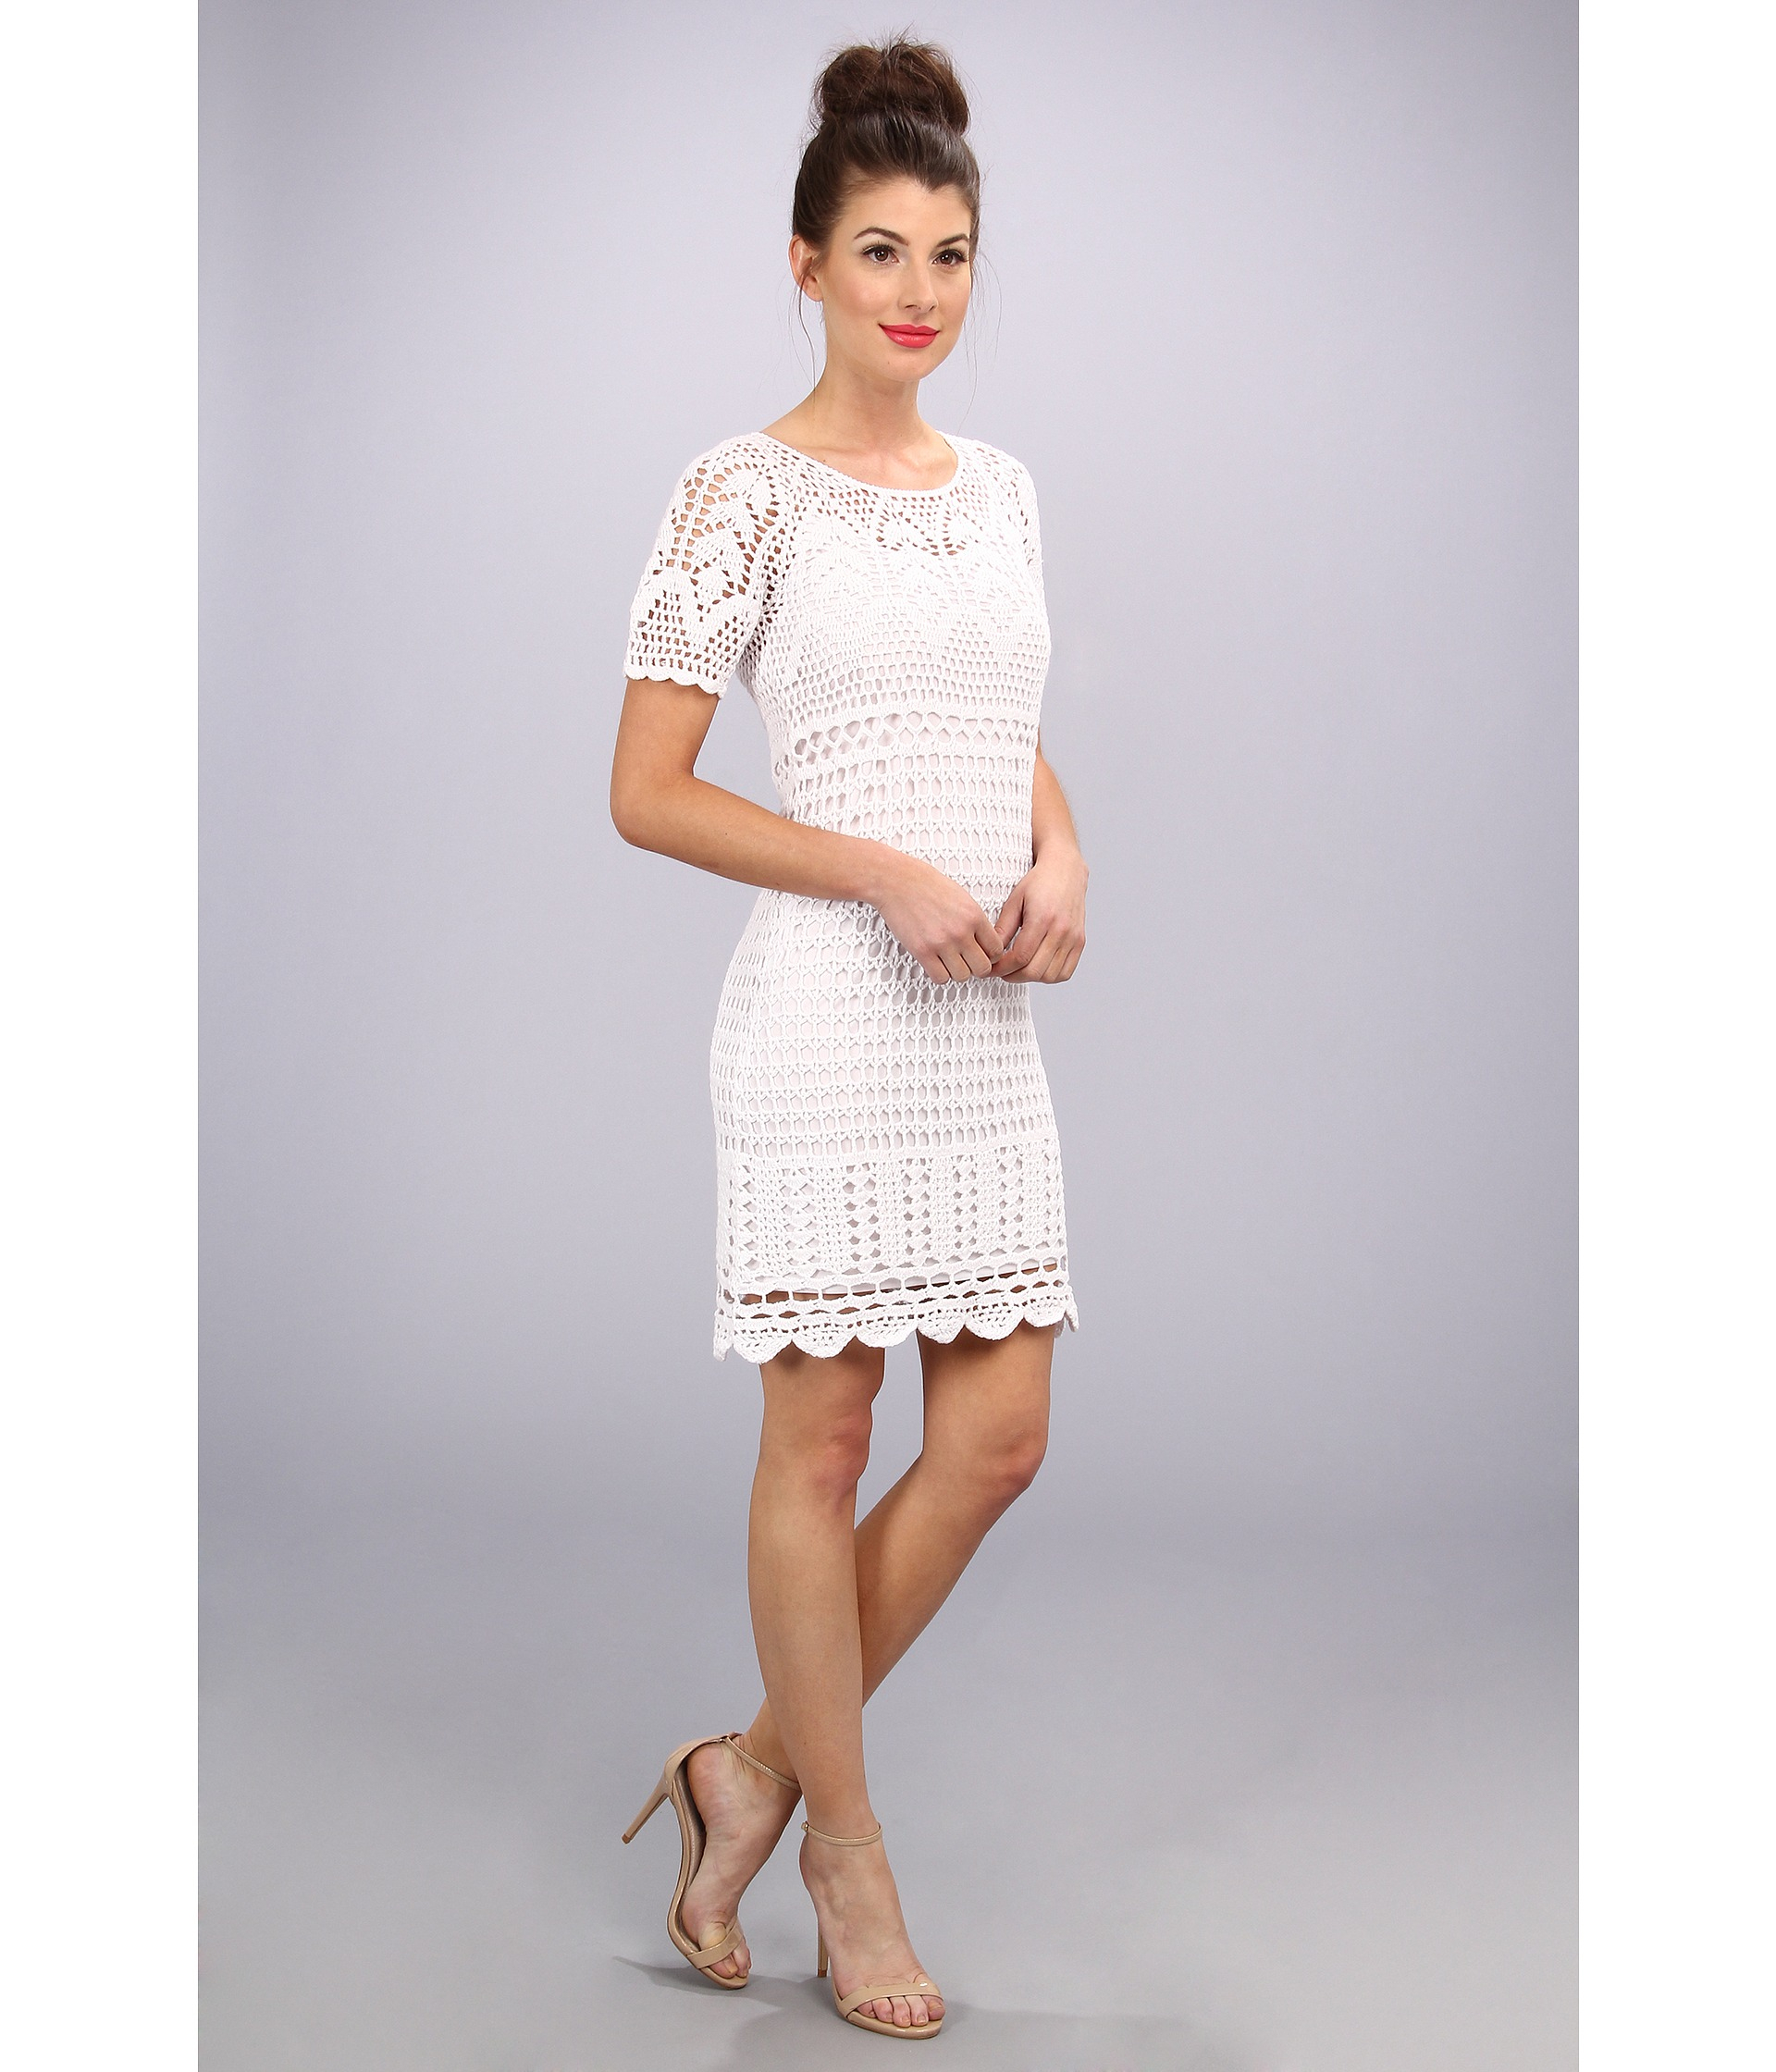 Donna morgan Short Sleeve Crochet Dress with Open Back in White  Lyst